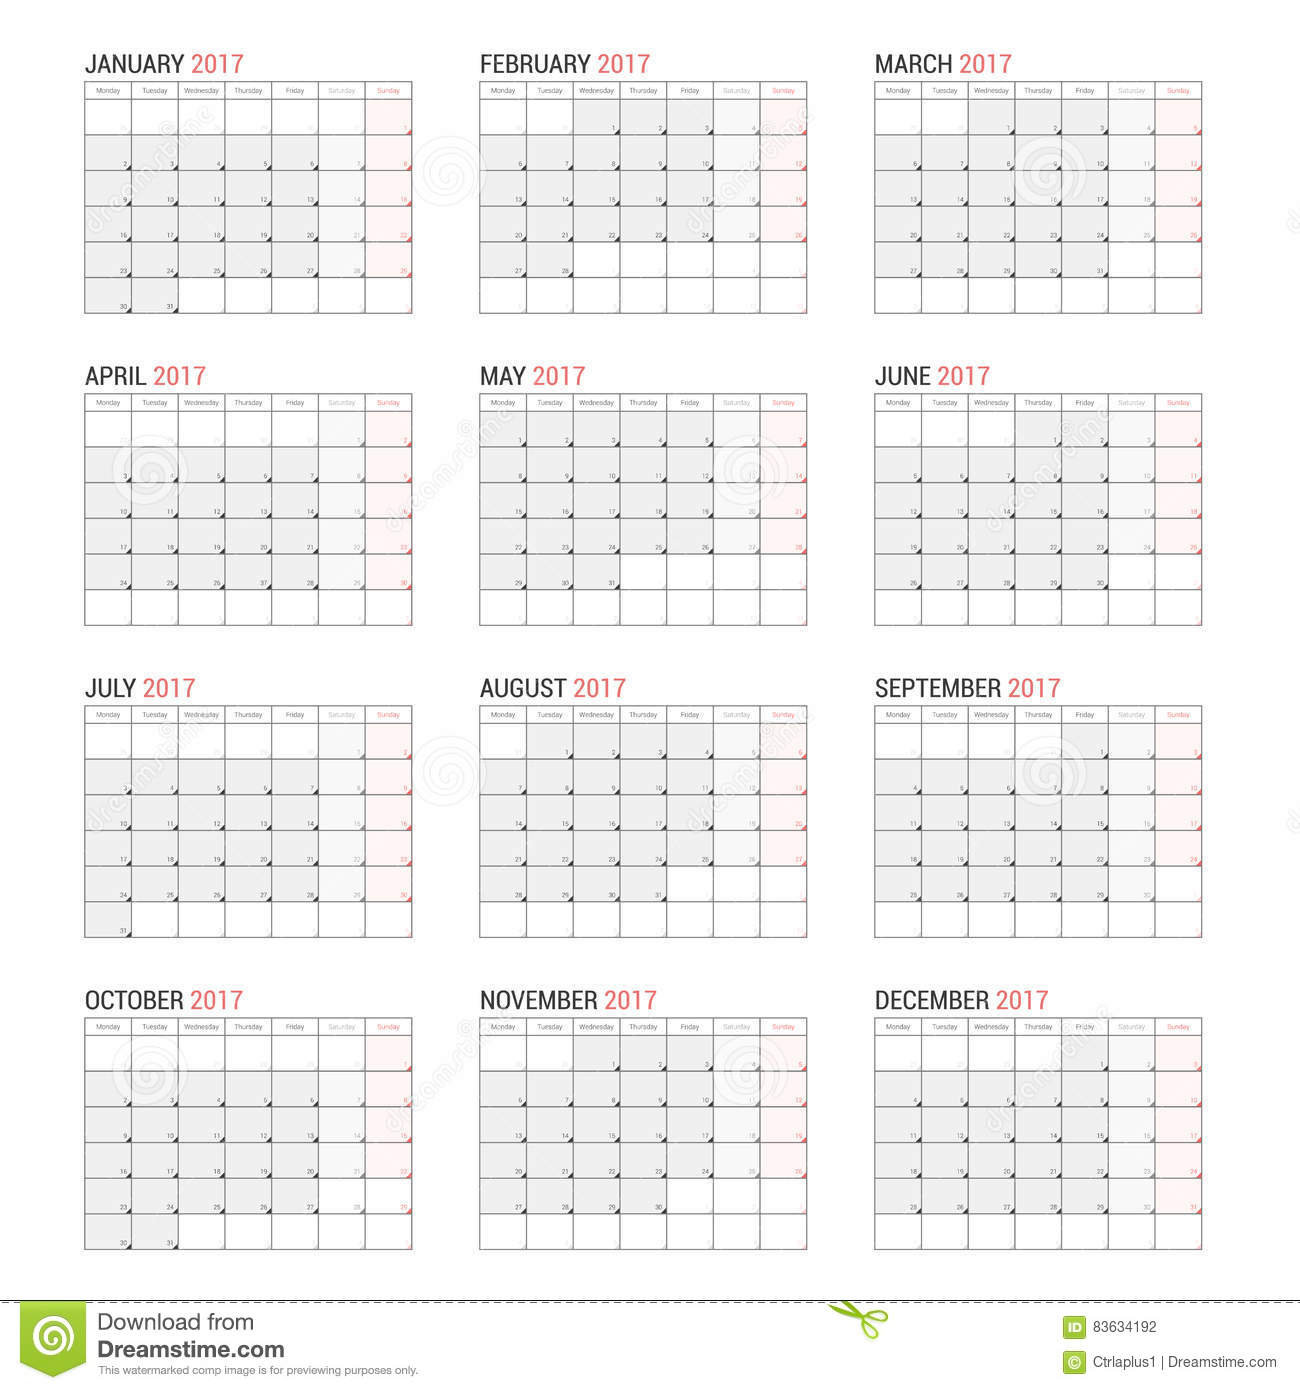 yearly wall calendar planner template for 2017 year vector illustration. Black Bedroom Furniture Sets. Home Design Ideas